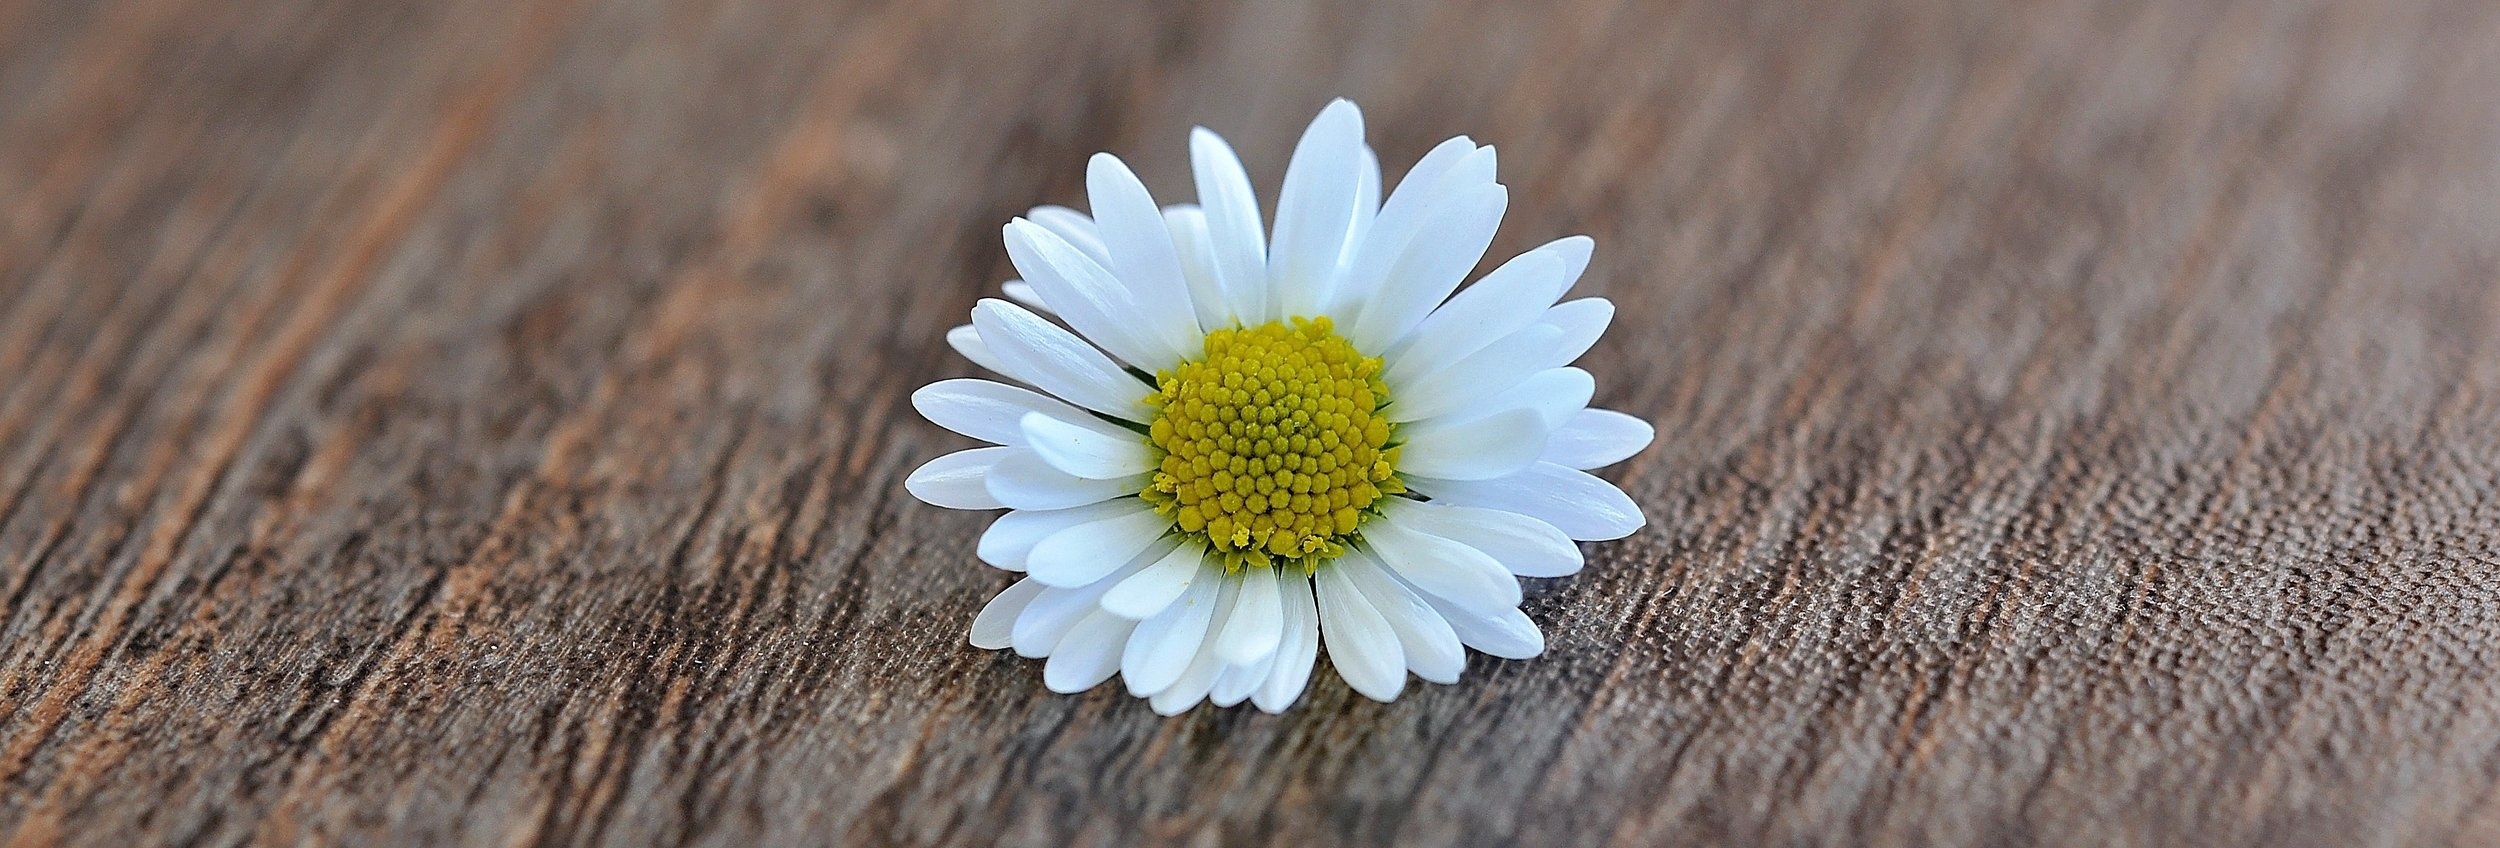 daisy-flower-blossom-bloom-white-wood-close.jpg